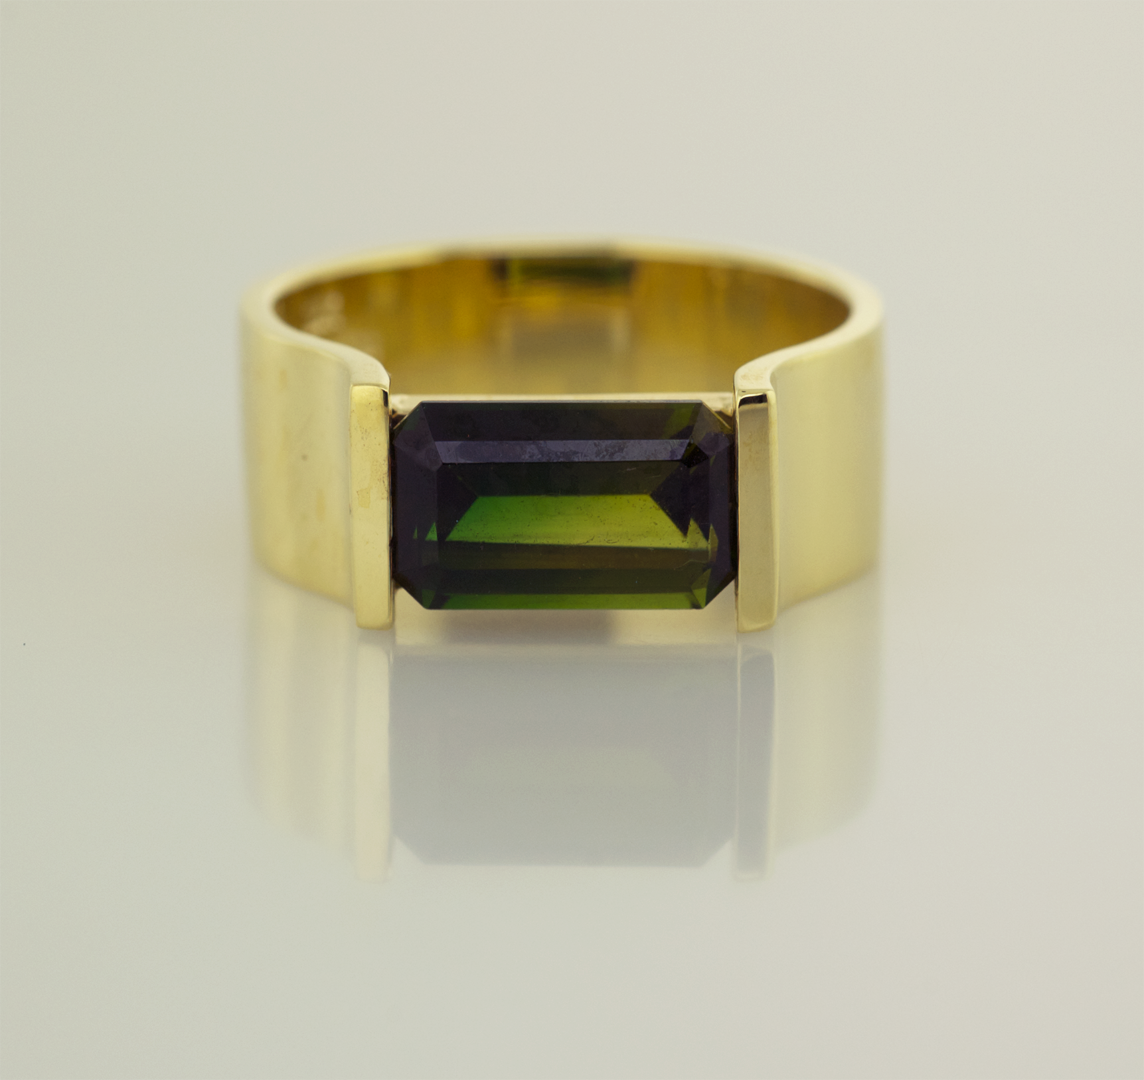 18KT Yellow Gold and Bi-Color Tourmaline Modern Ring